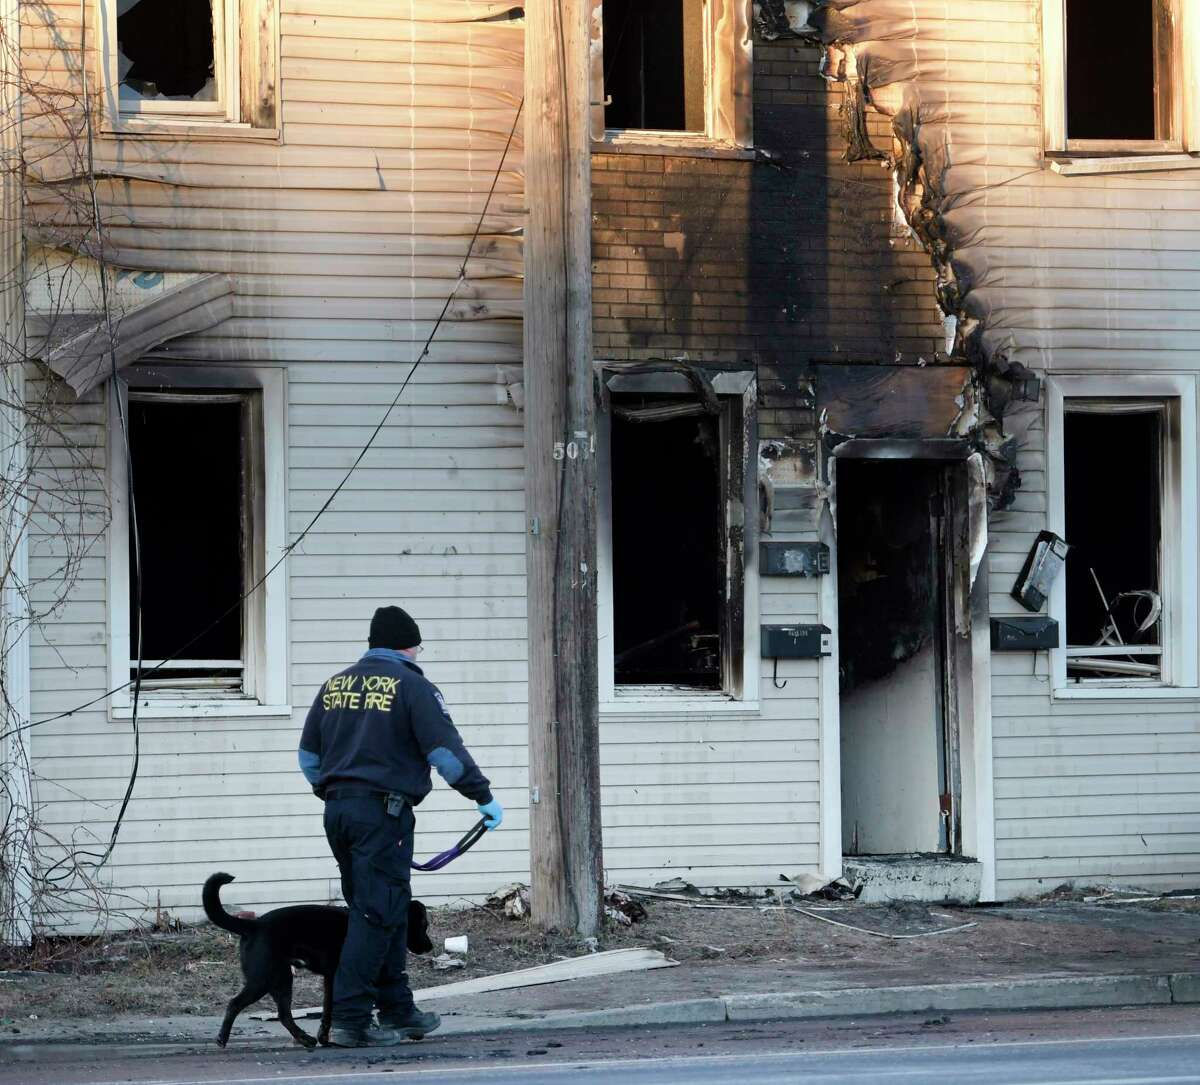 A New York State Fire investigator looks for clues as to the cause of a fire at 1366 Central Avenue Friday Mar. 4, 2017 in Colonie, N.Y. (Skip Dickstein/Times Union)